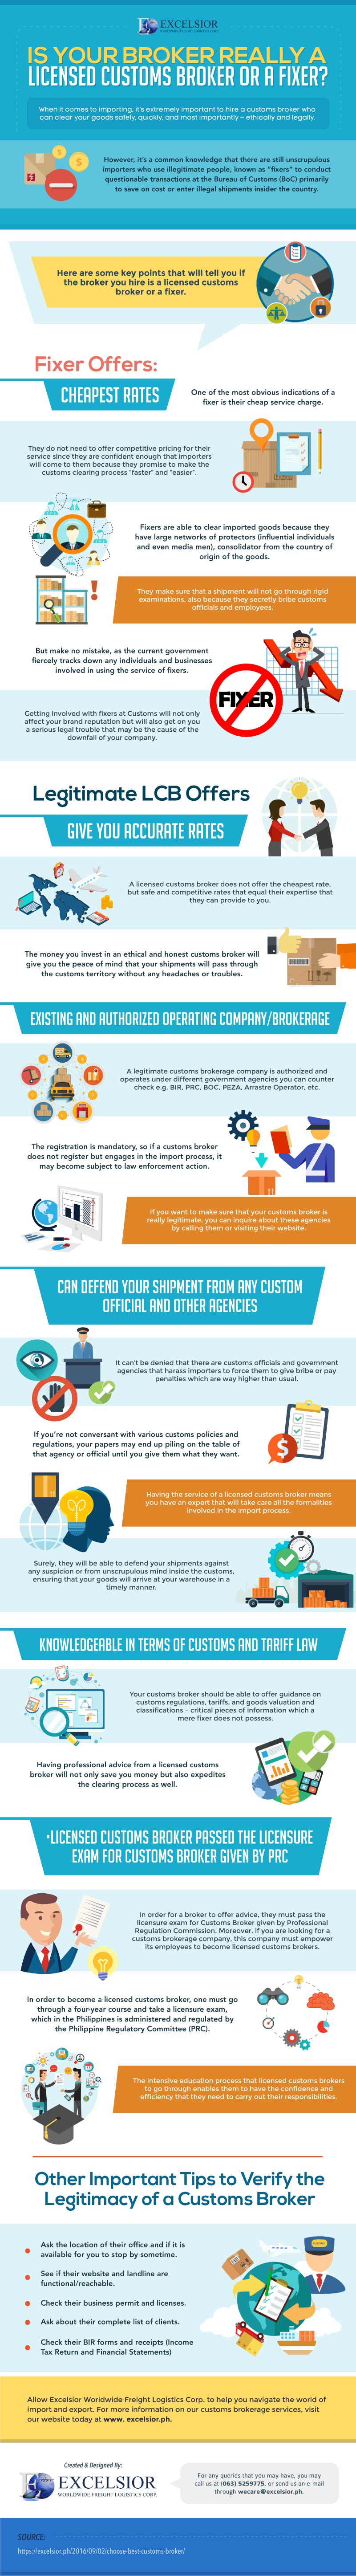 The Case for Licensed Brokers Vs Fixers - Infographic